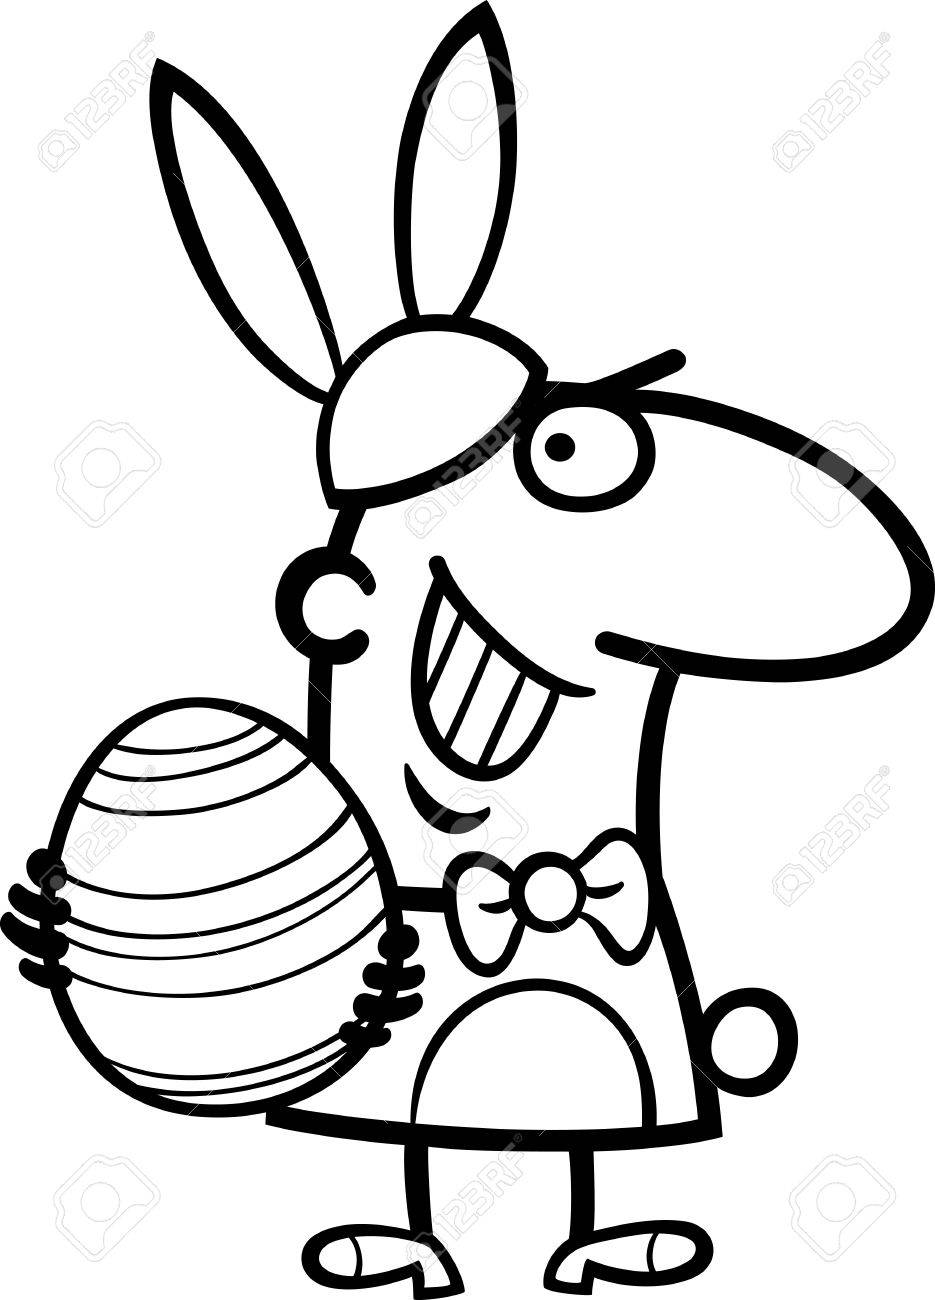 935x1300 Black And White Cartoon Illustration Of Funny Man In Easter Bunny